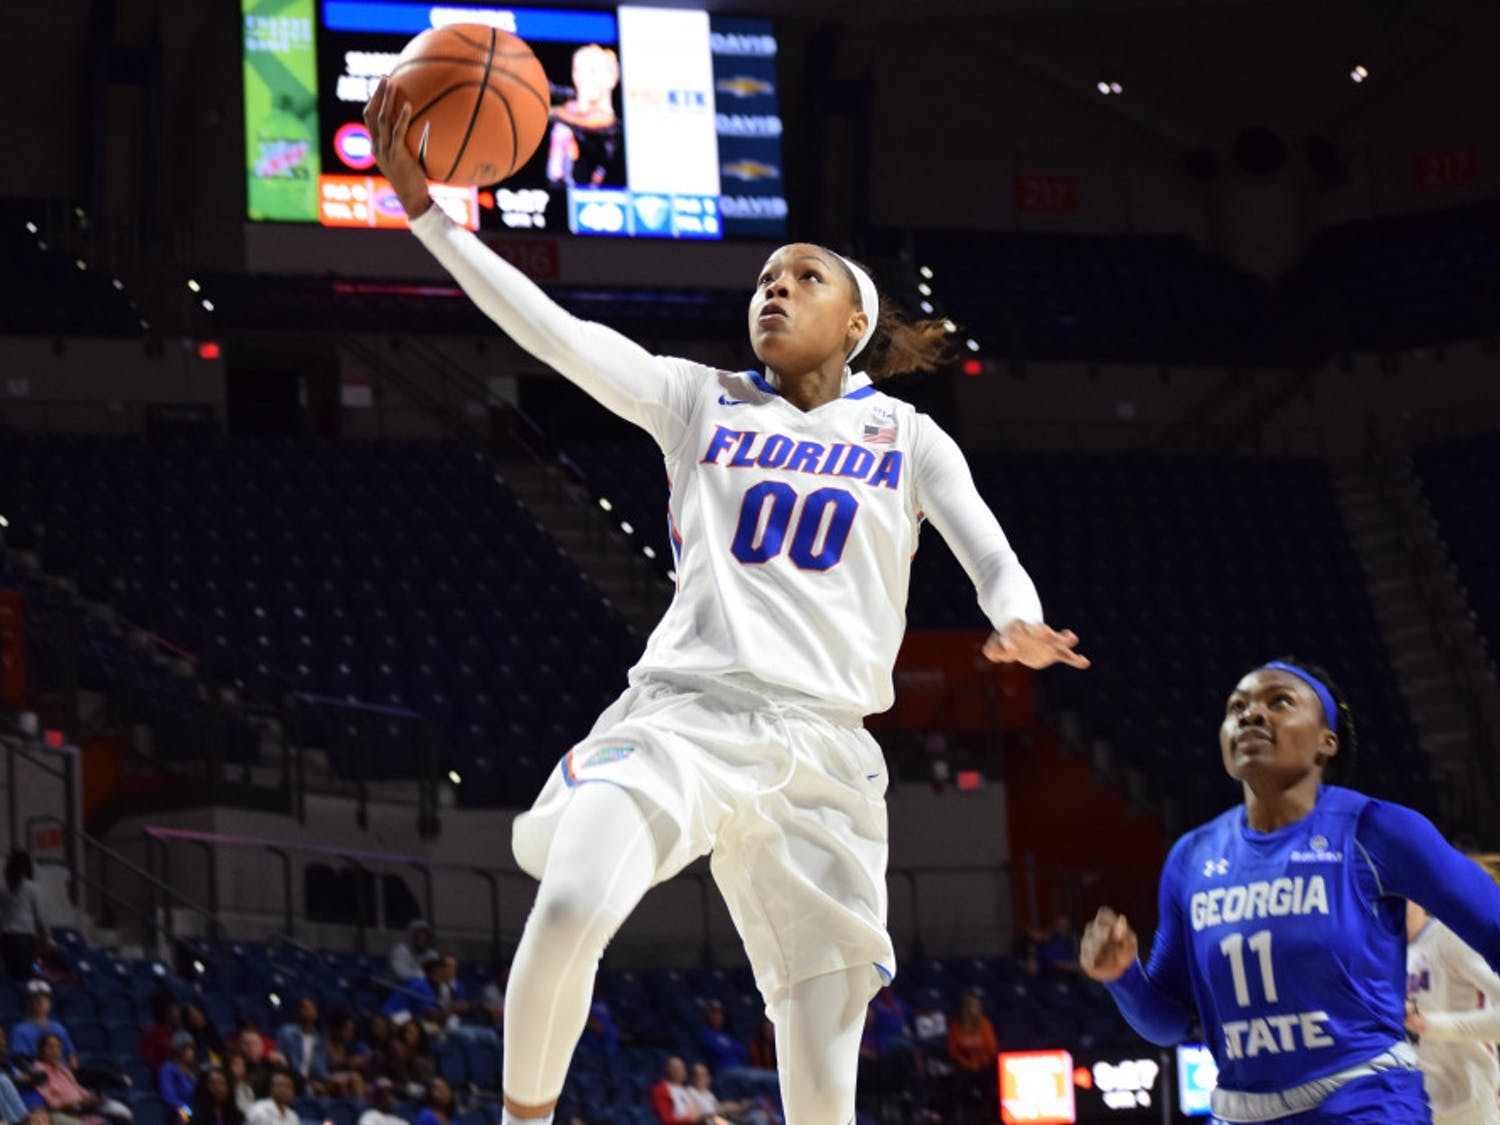 Delicia Washingtonwas efficient from the floor, hitting 4-of-7 shots for 12 points, while coming away with 12 rebounds and serving up 10 assists to record the Gators' third triple-double in program history.